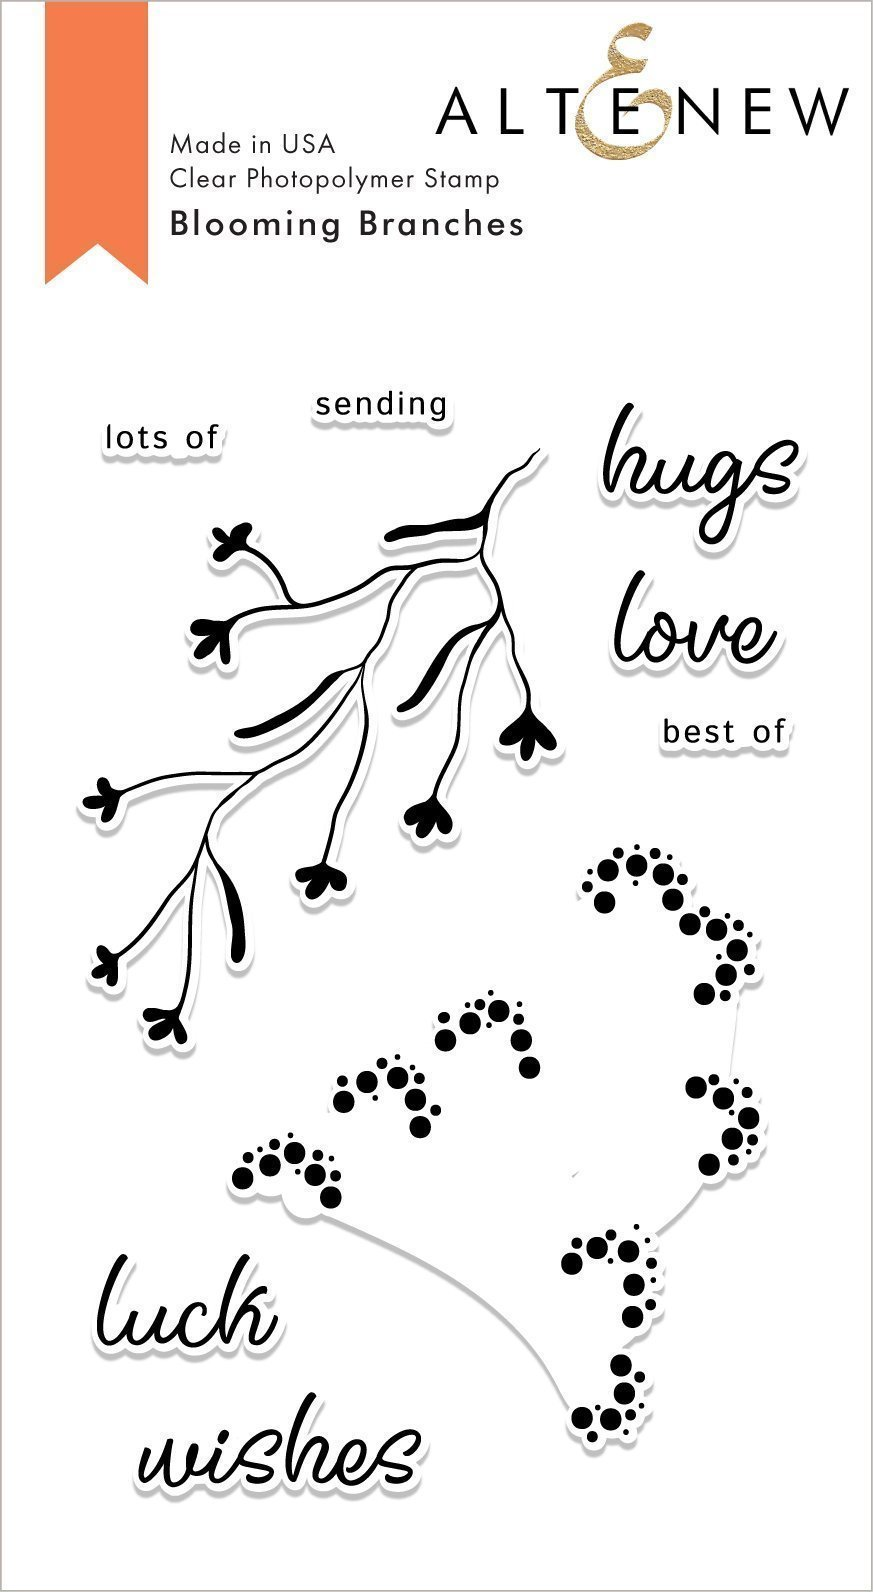 *NEW* - Altenew - Blooming Branches Stamp Set